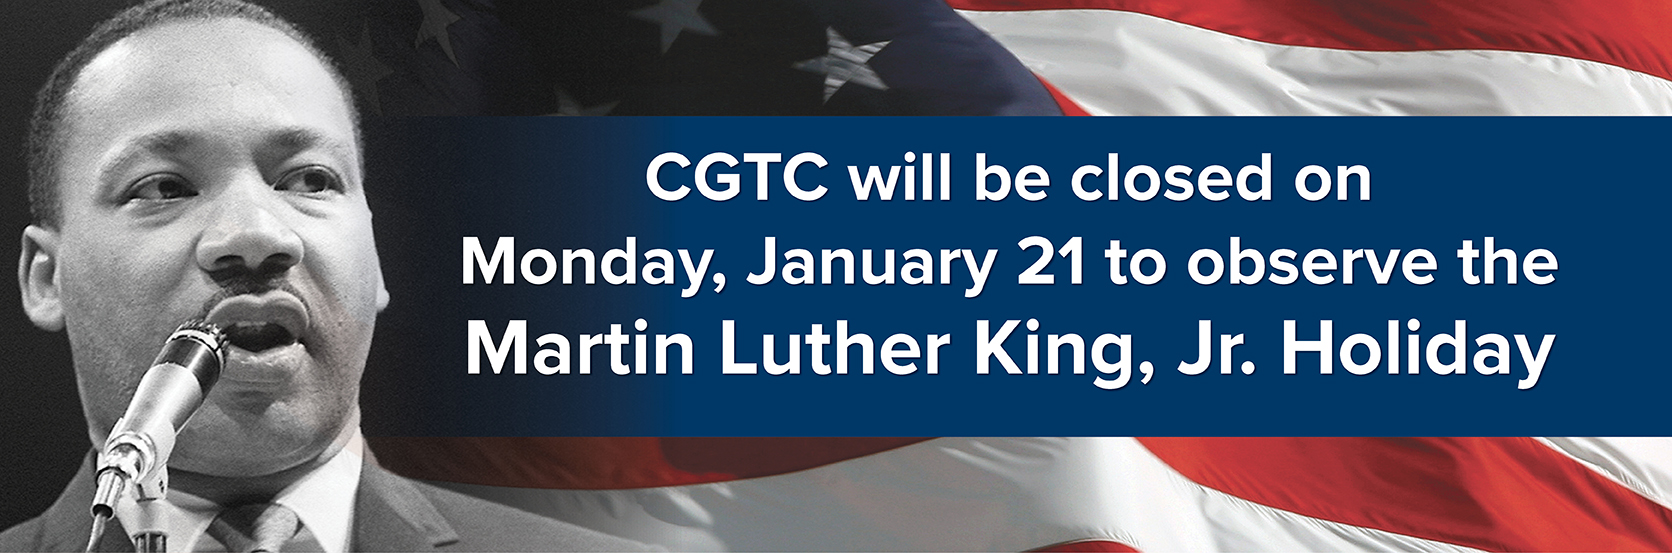 CGTC will be closed on Monday, January 21 to observe the Martin Luther King, Jr. Holiday